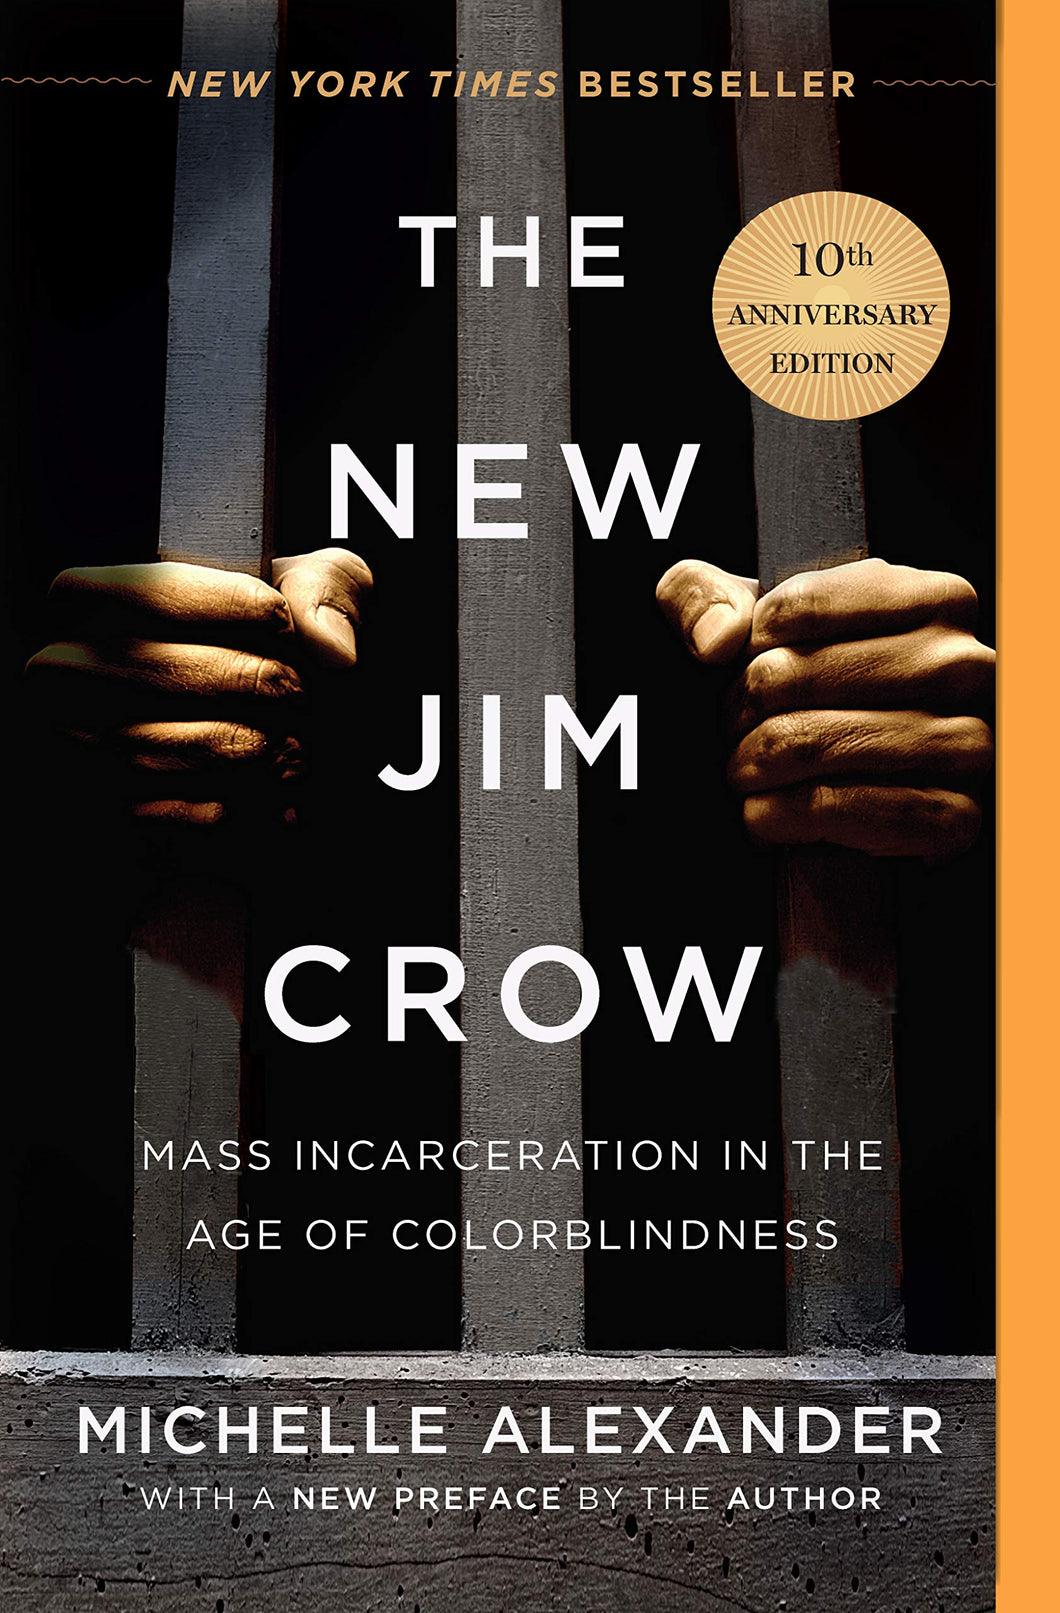 The New Jim Crow // Mass Incarceration in the Age of Colorblindness